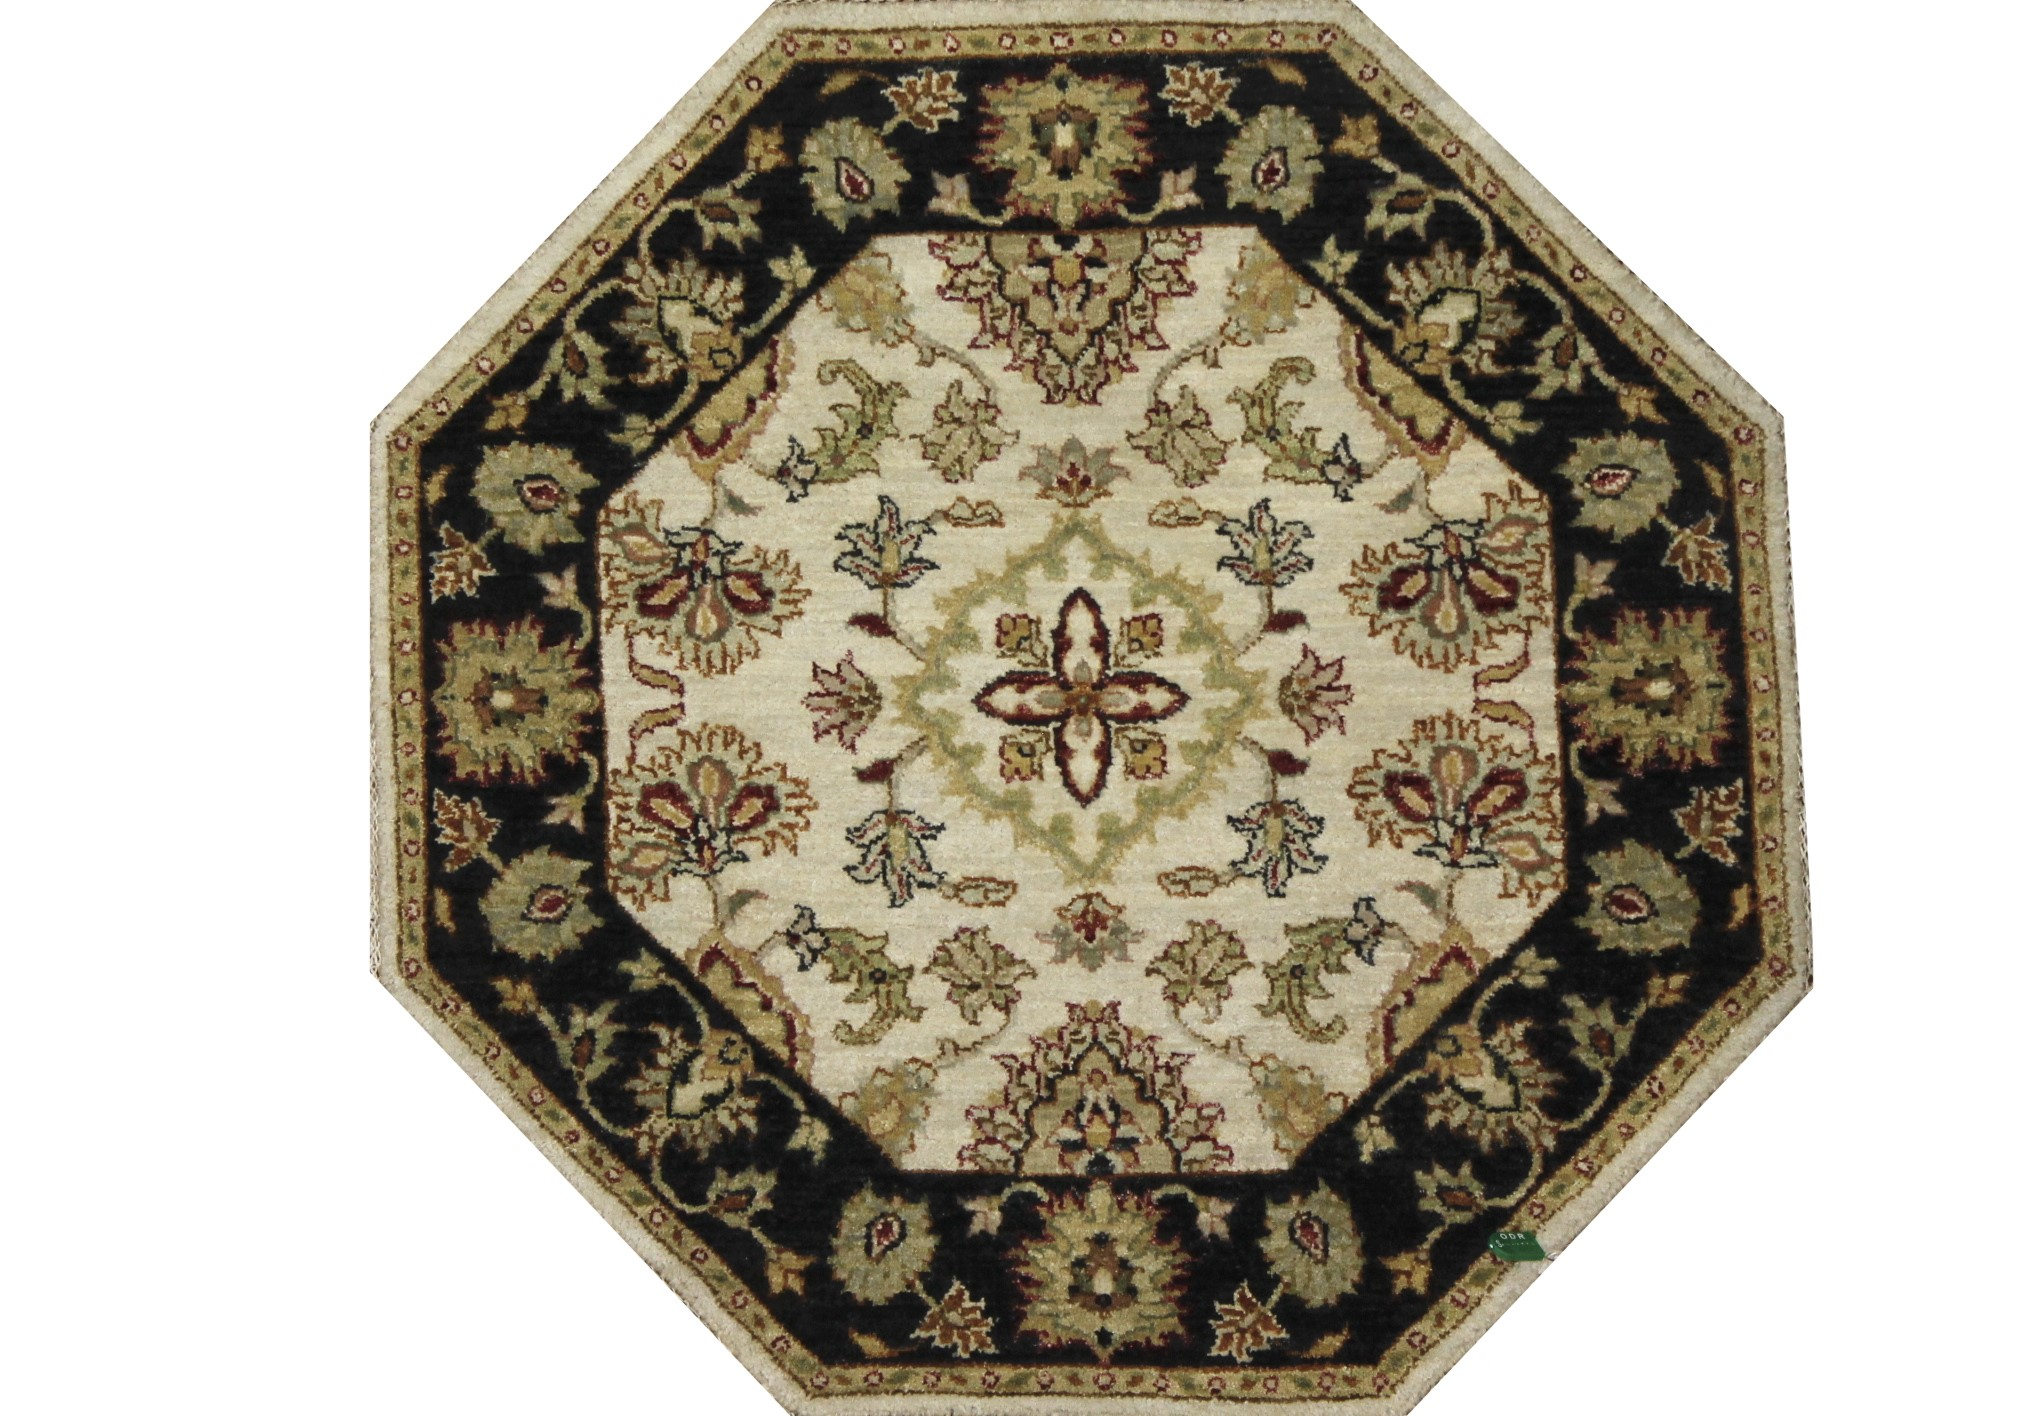 Traditional Hand Knotted Wool Area Rug - MR022397